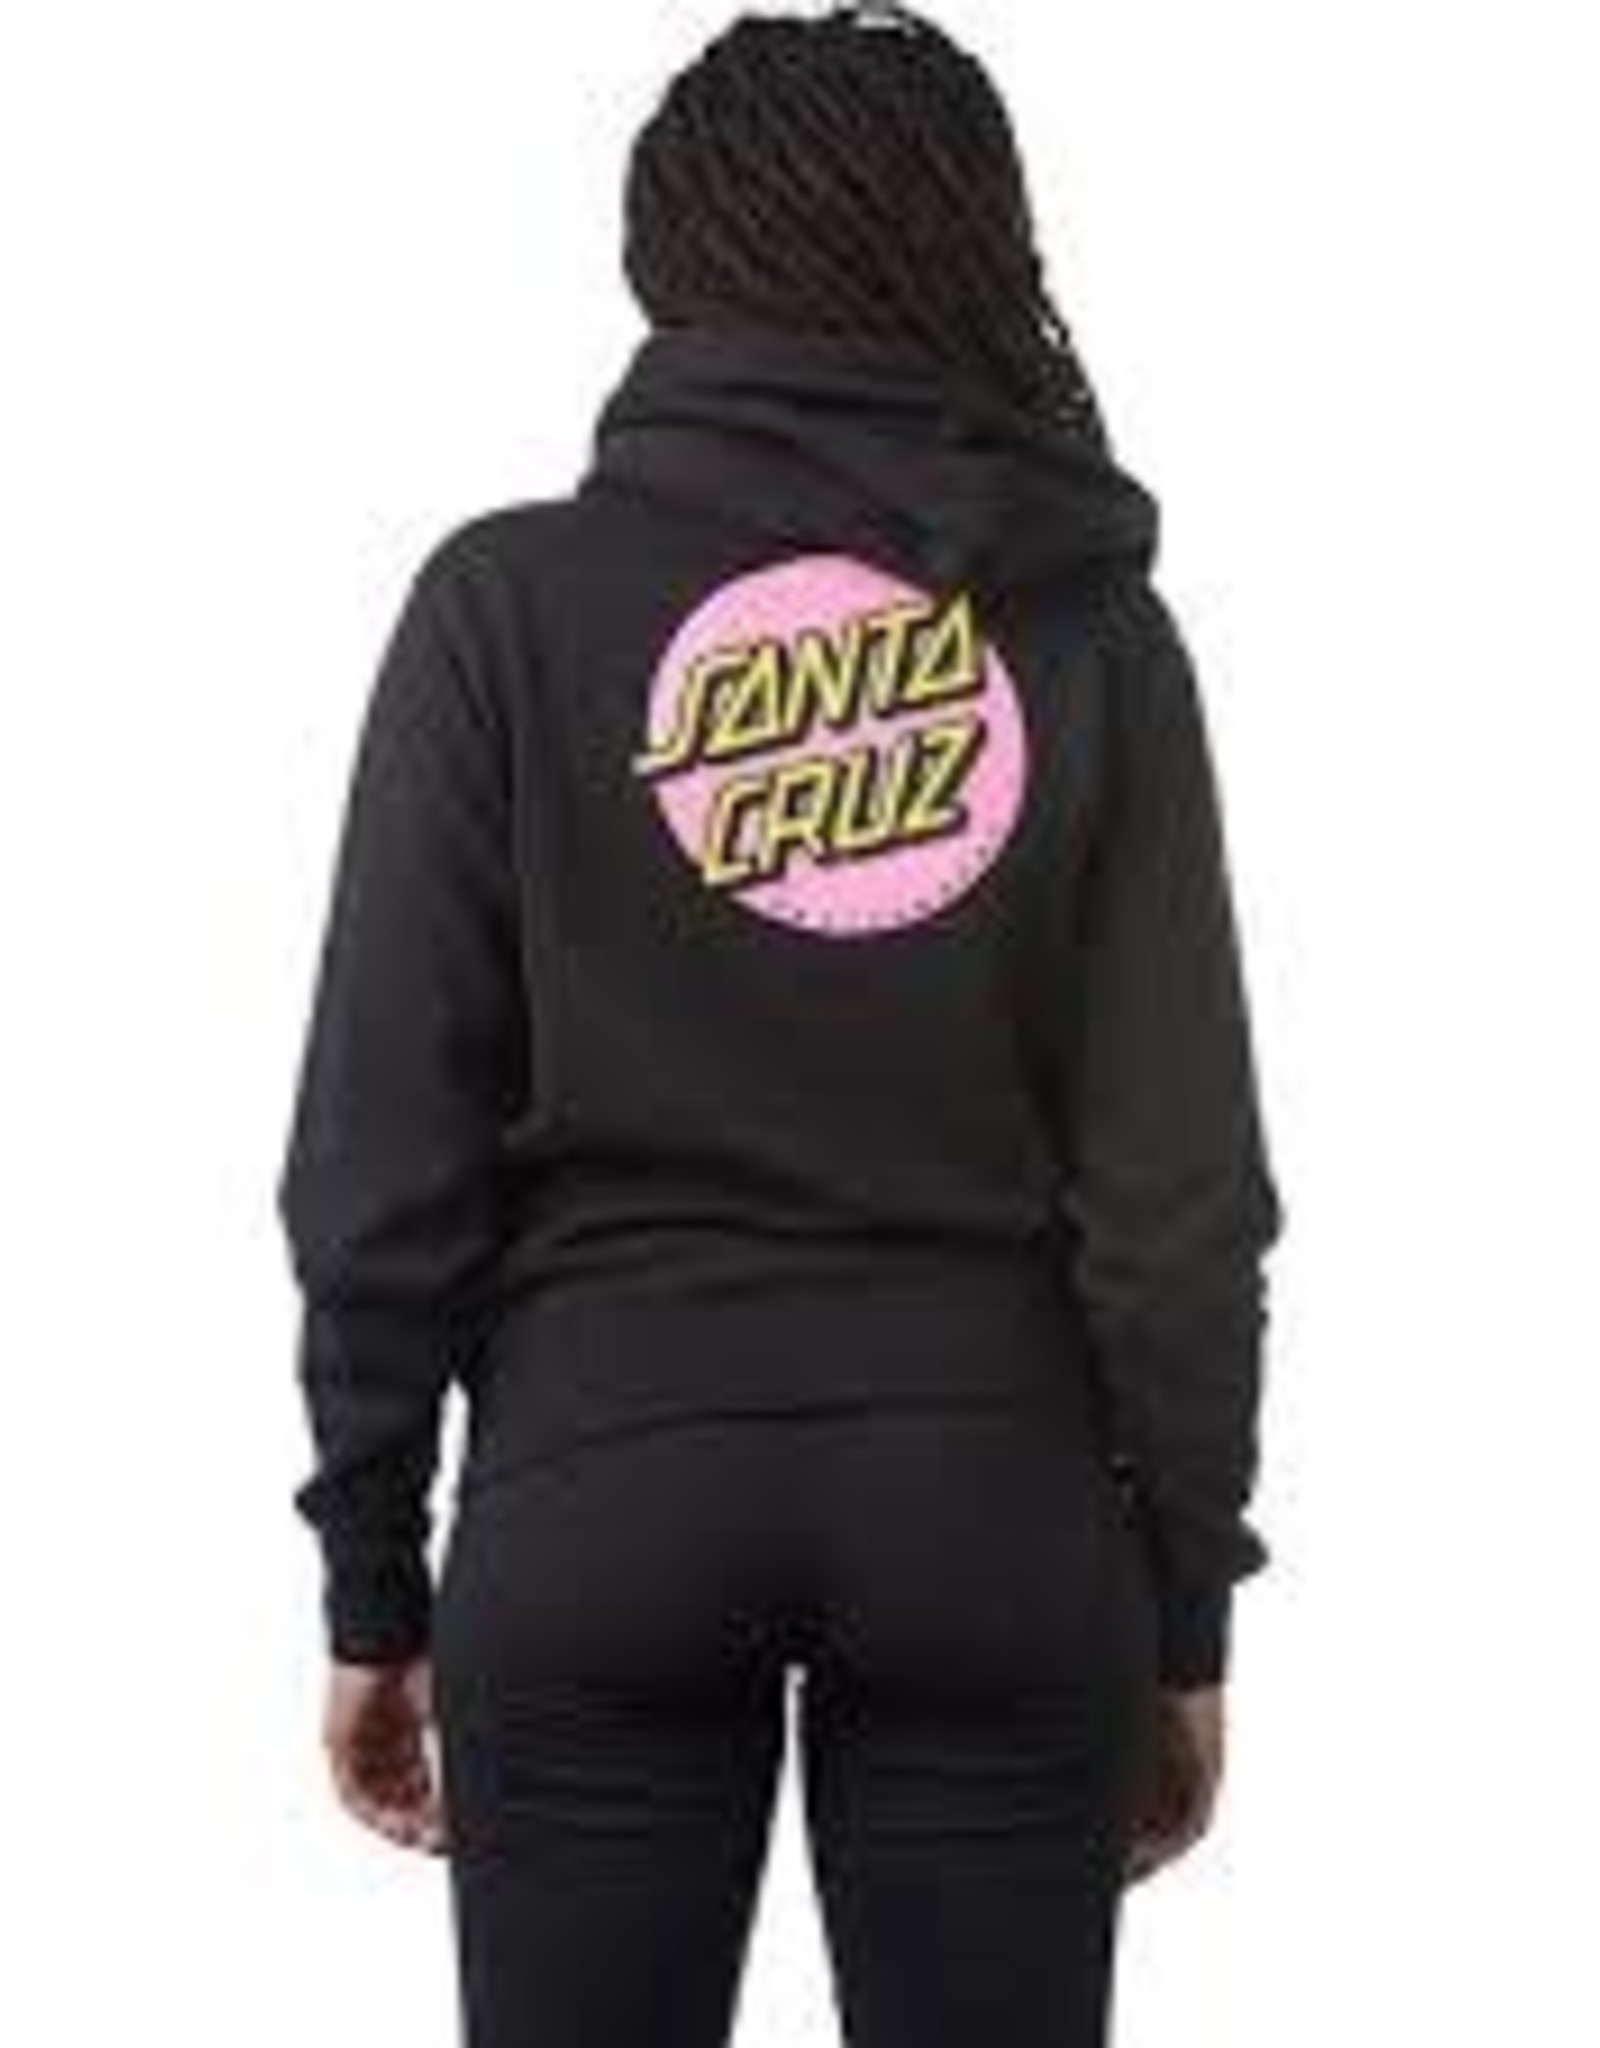 Santa Cruz Santa Cruz Womens Zip Other Dot